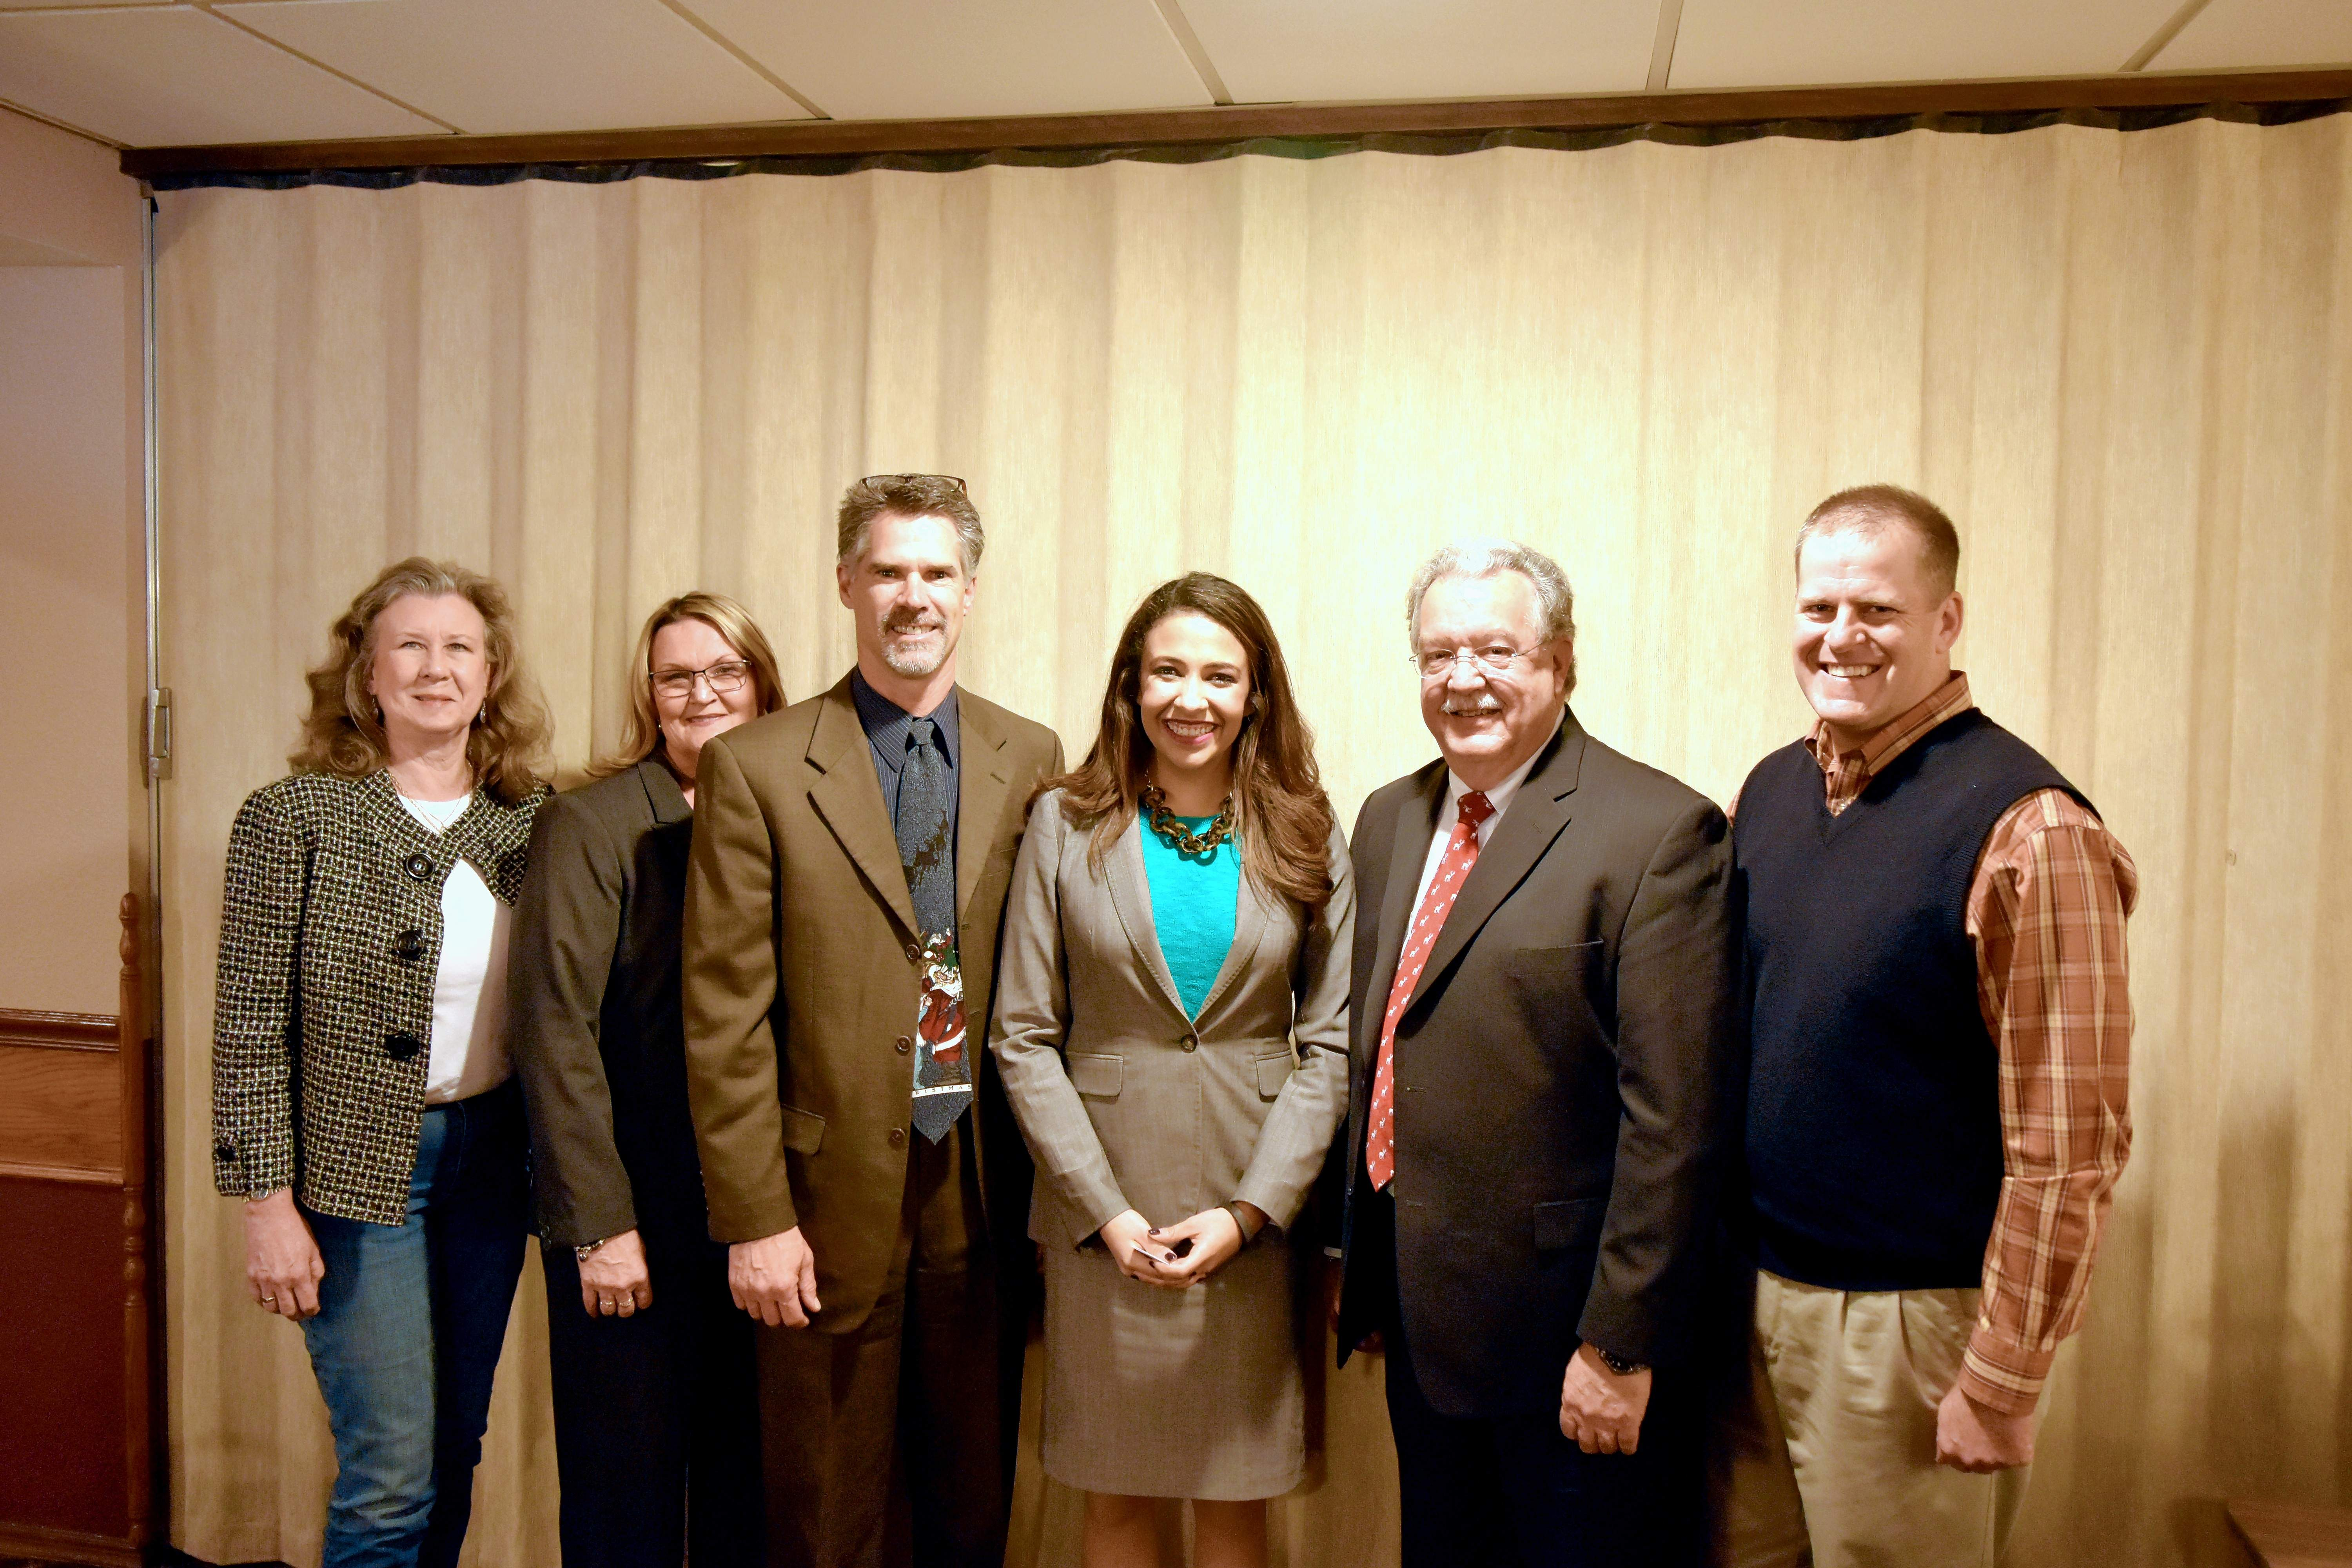 Pictured are Republican candidates Melanie Johnson (Randolph County Clerk and Recorder), Debbie Hoelscher (County Treasurer), David Friess (State Representative, 116th District), Erika Harold (Illinois Attorney General), Marc Kiehna (County Commissioner) and State Sen. Paul Schimpf (R-Waterloo).